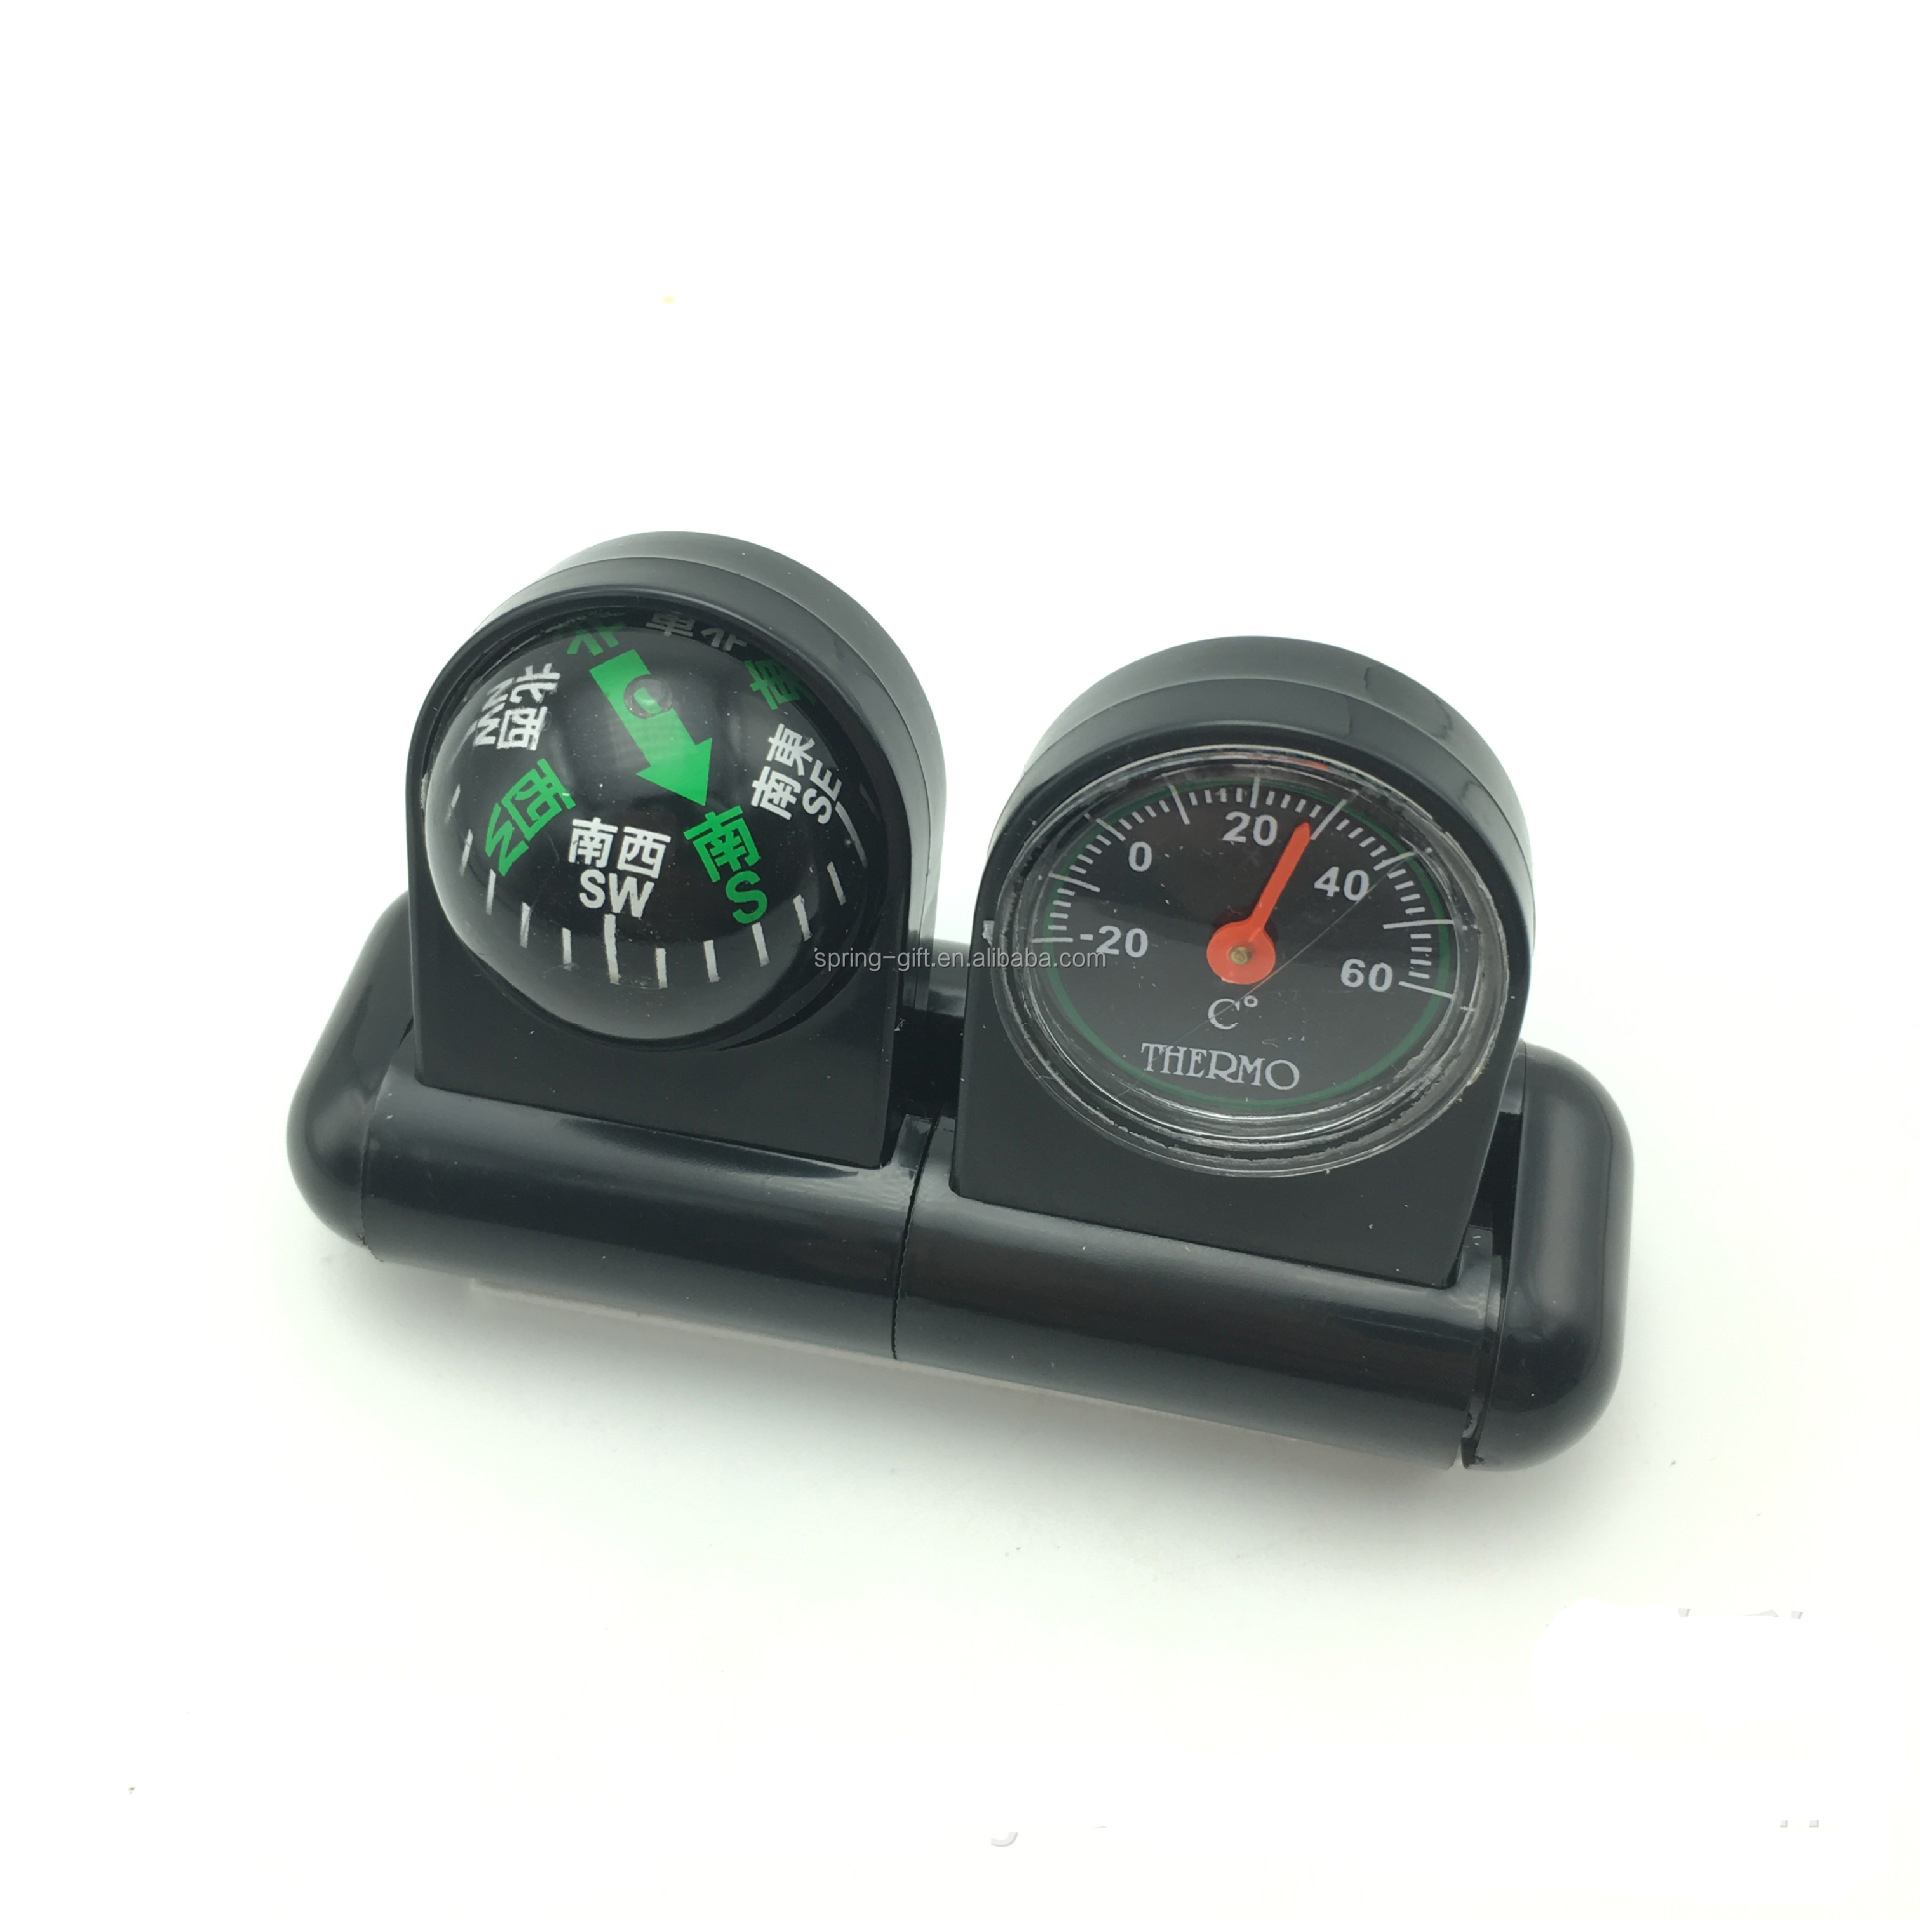 2 in 1 anhaftender Fahrzeug-Auto-Boots-LKW-Navigations-Ball-Kompass mit Thermometer